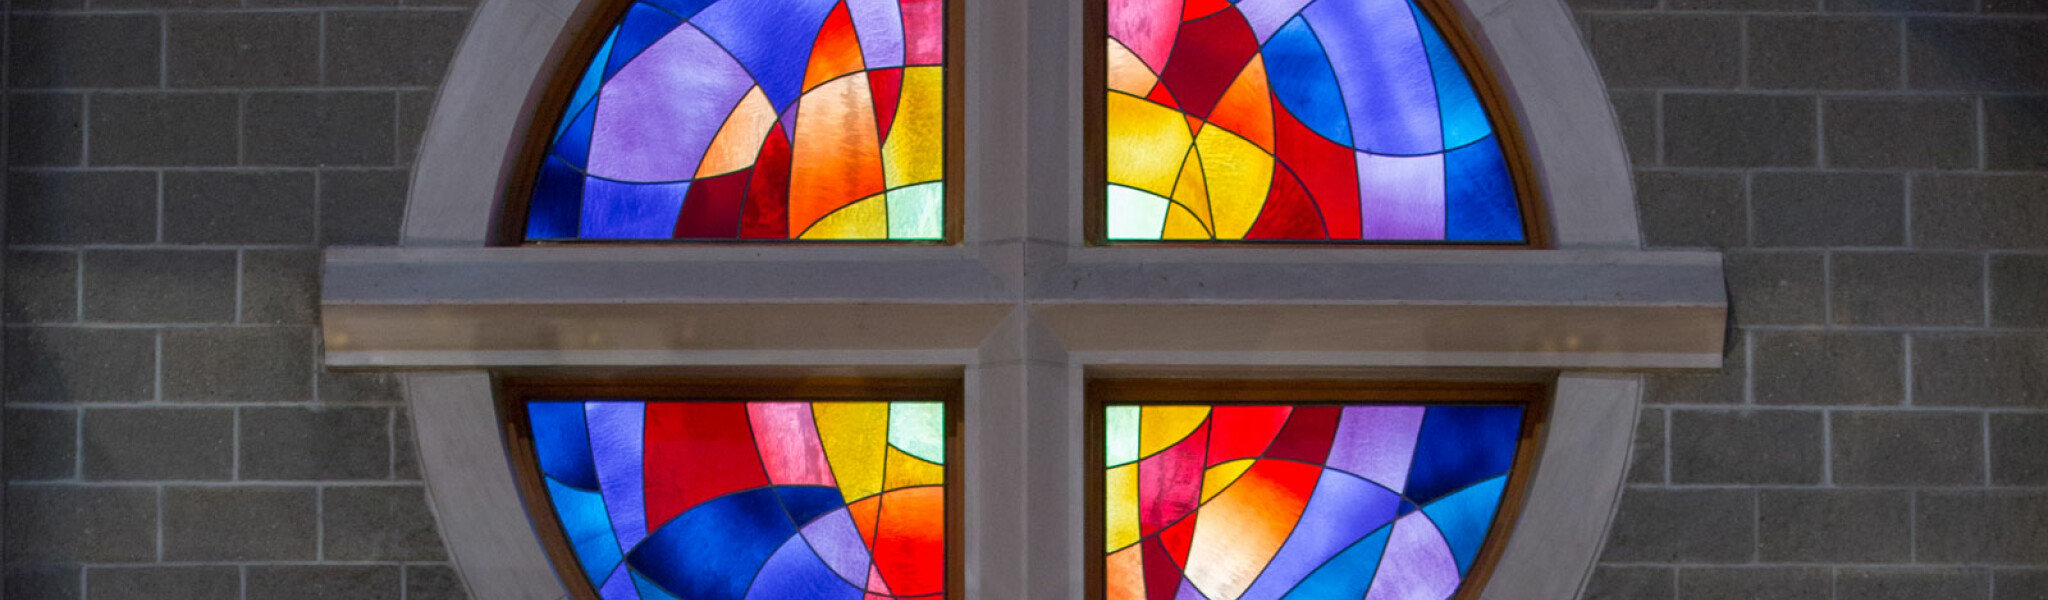 Find Your Place | Cornerstone Lutheran Church | Cornerstone Lutheran Church